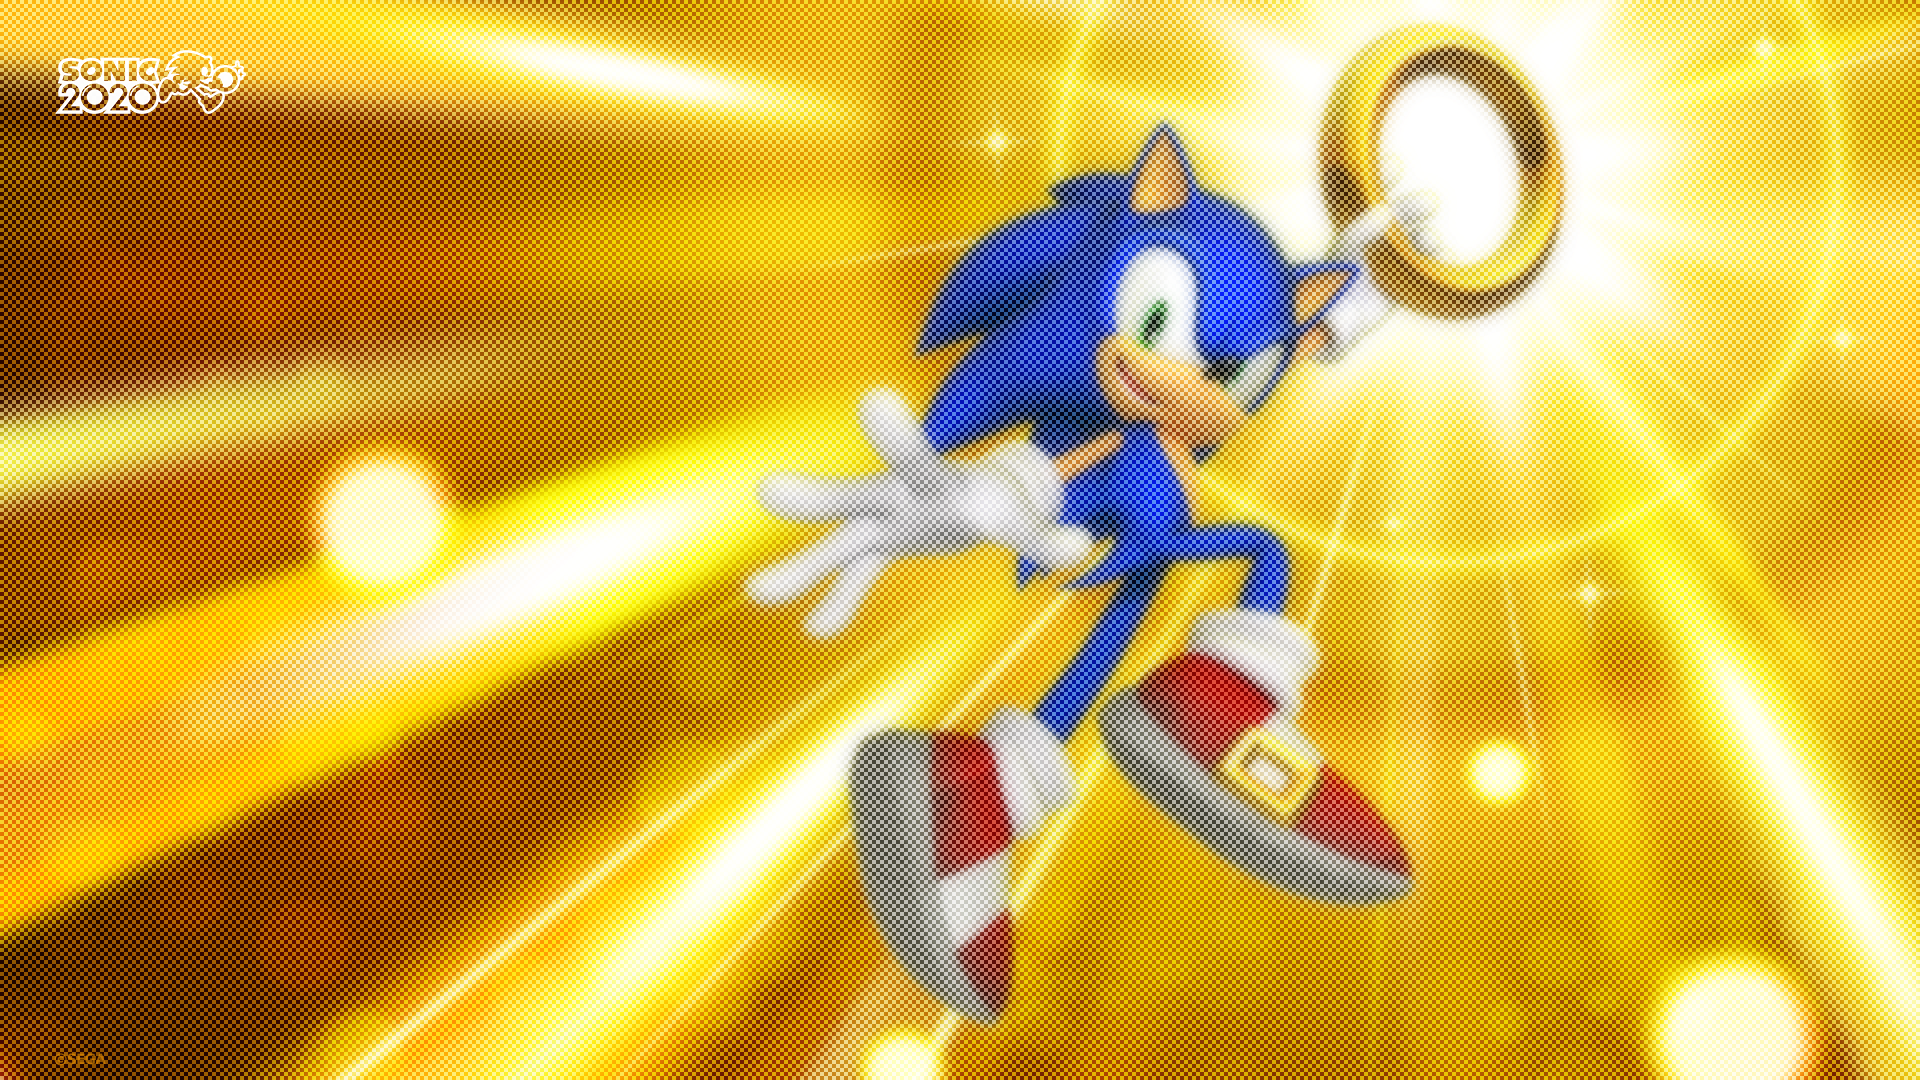 wallpaper_182_sonic2020_01_pc.png